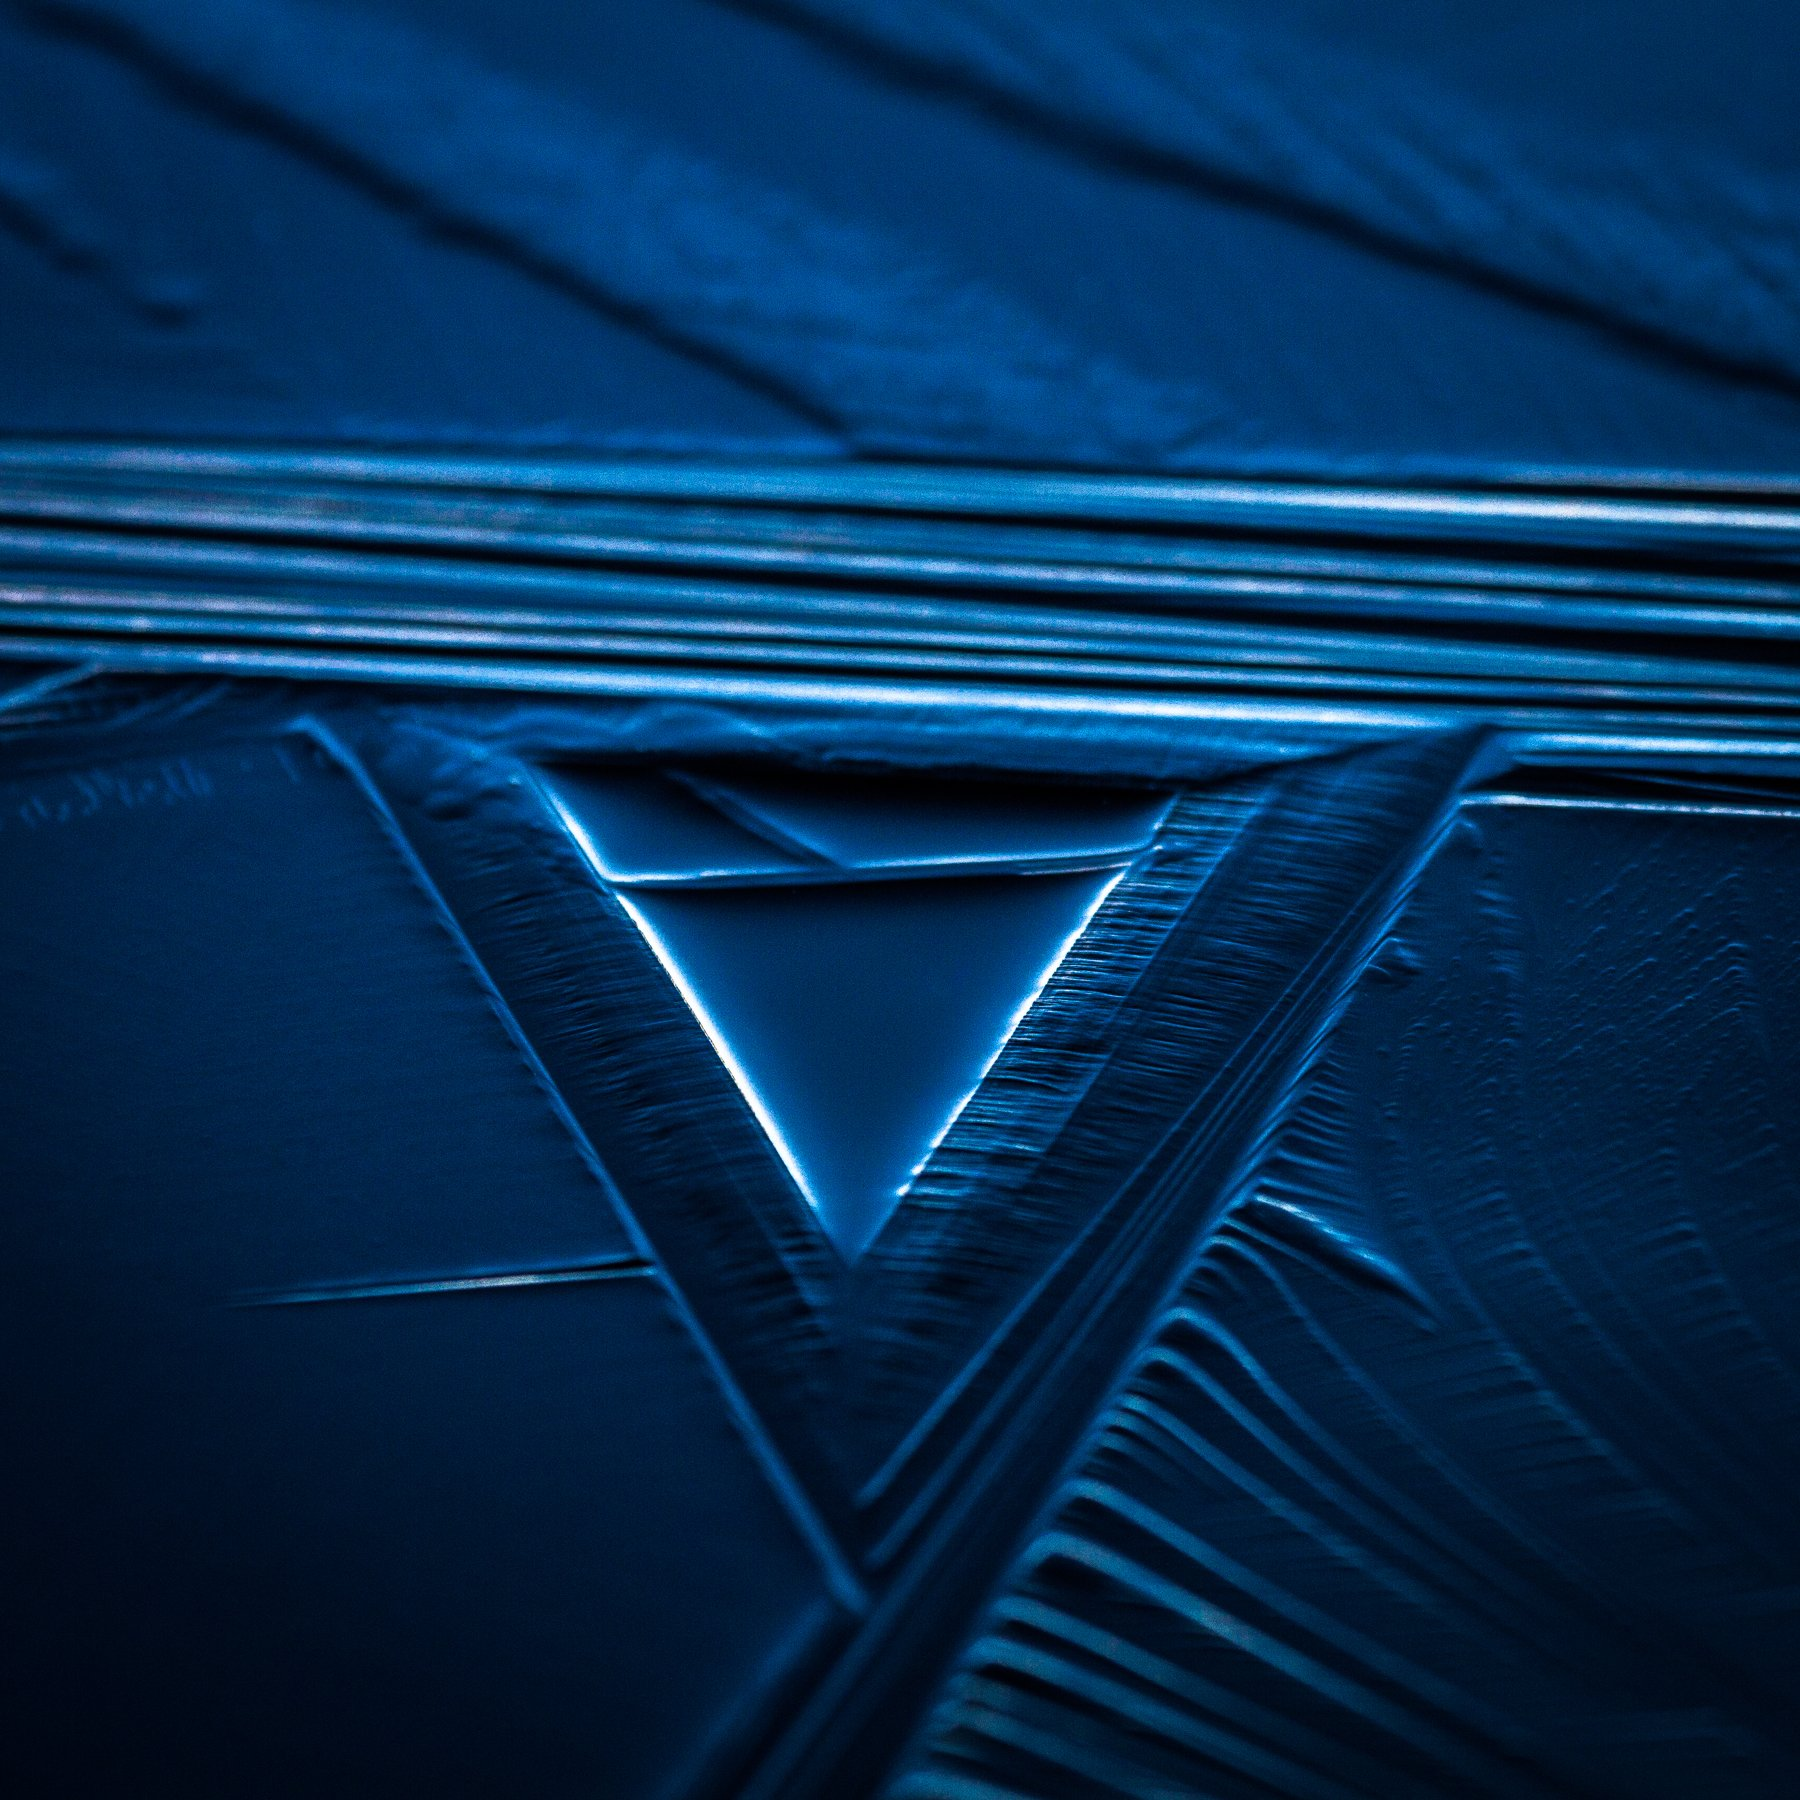 Ice,blue,V,Y,winter,abstract,erikszphoto,structure,, Ēriks Zilbalodis